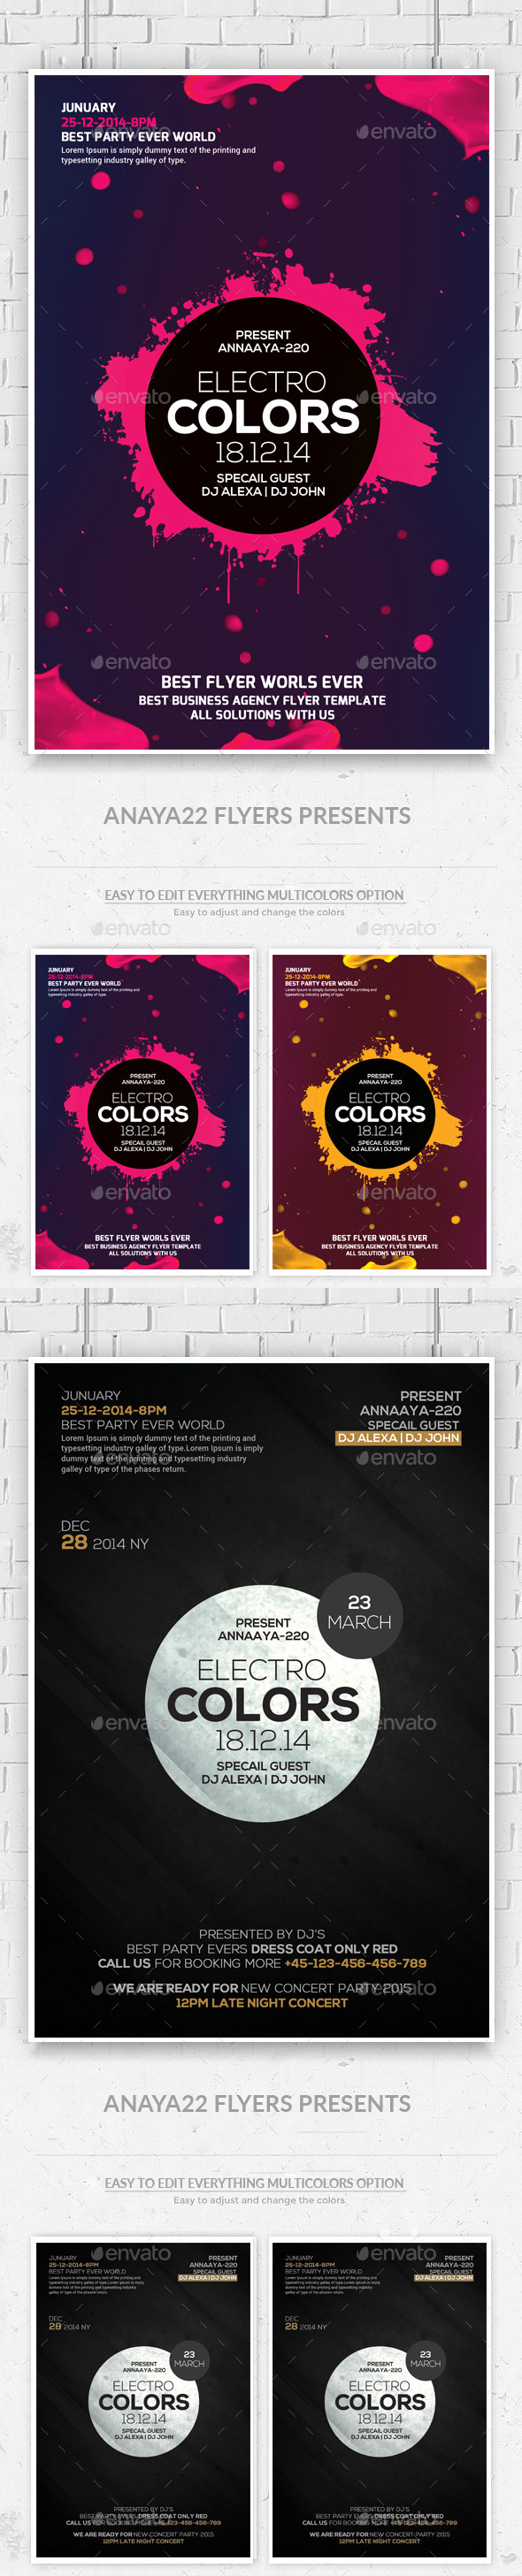 Electro Colors Flyers Bundle Template - Clubs & Parties Events